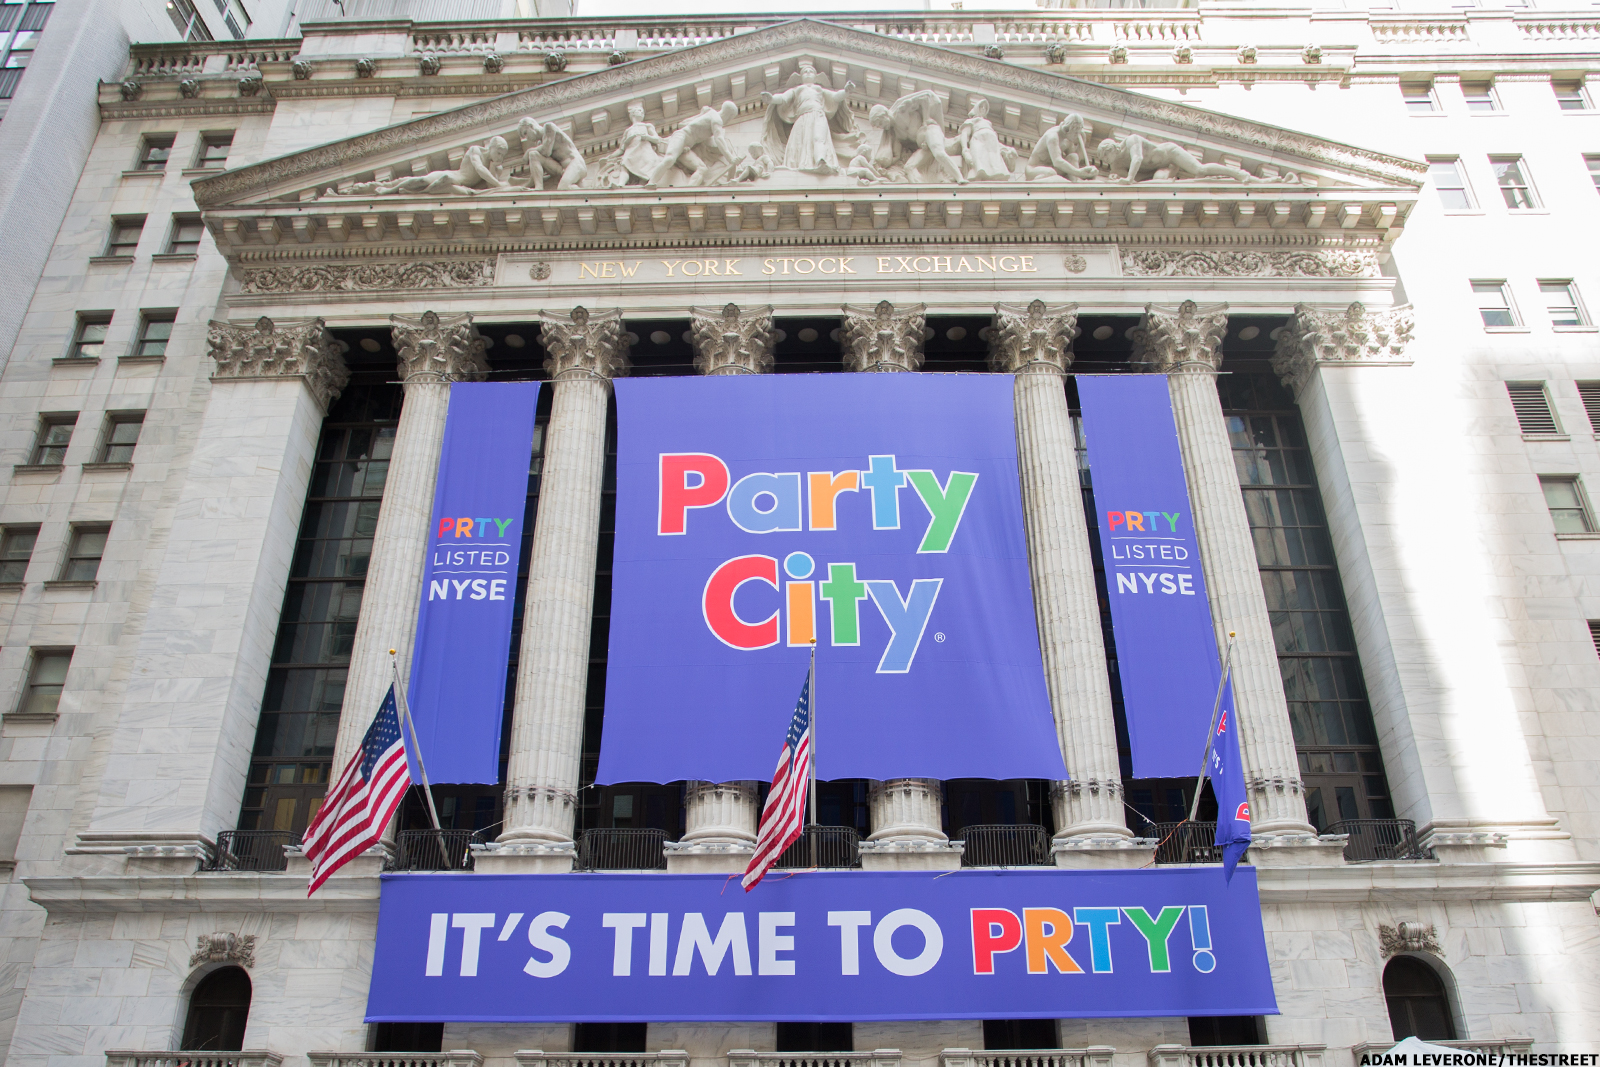 U0026 39 Party City  Prty  Is A Pillar Of Business U0026 39  Ceo Harrison